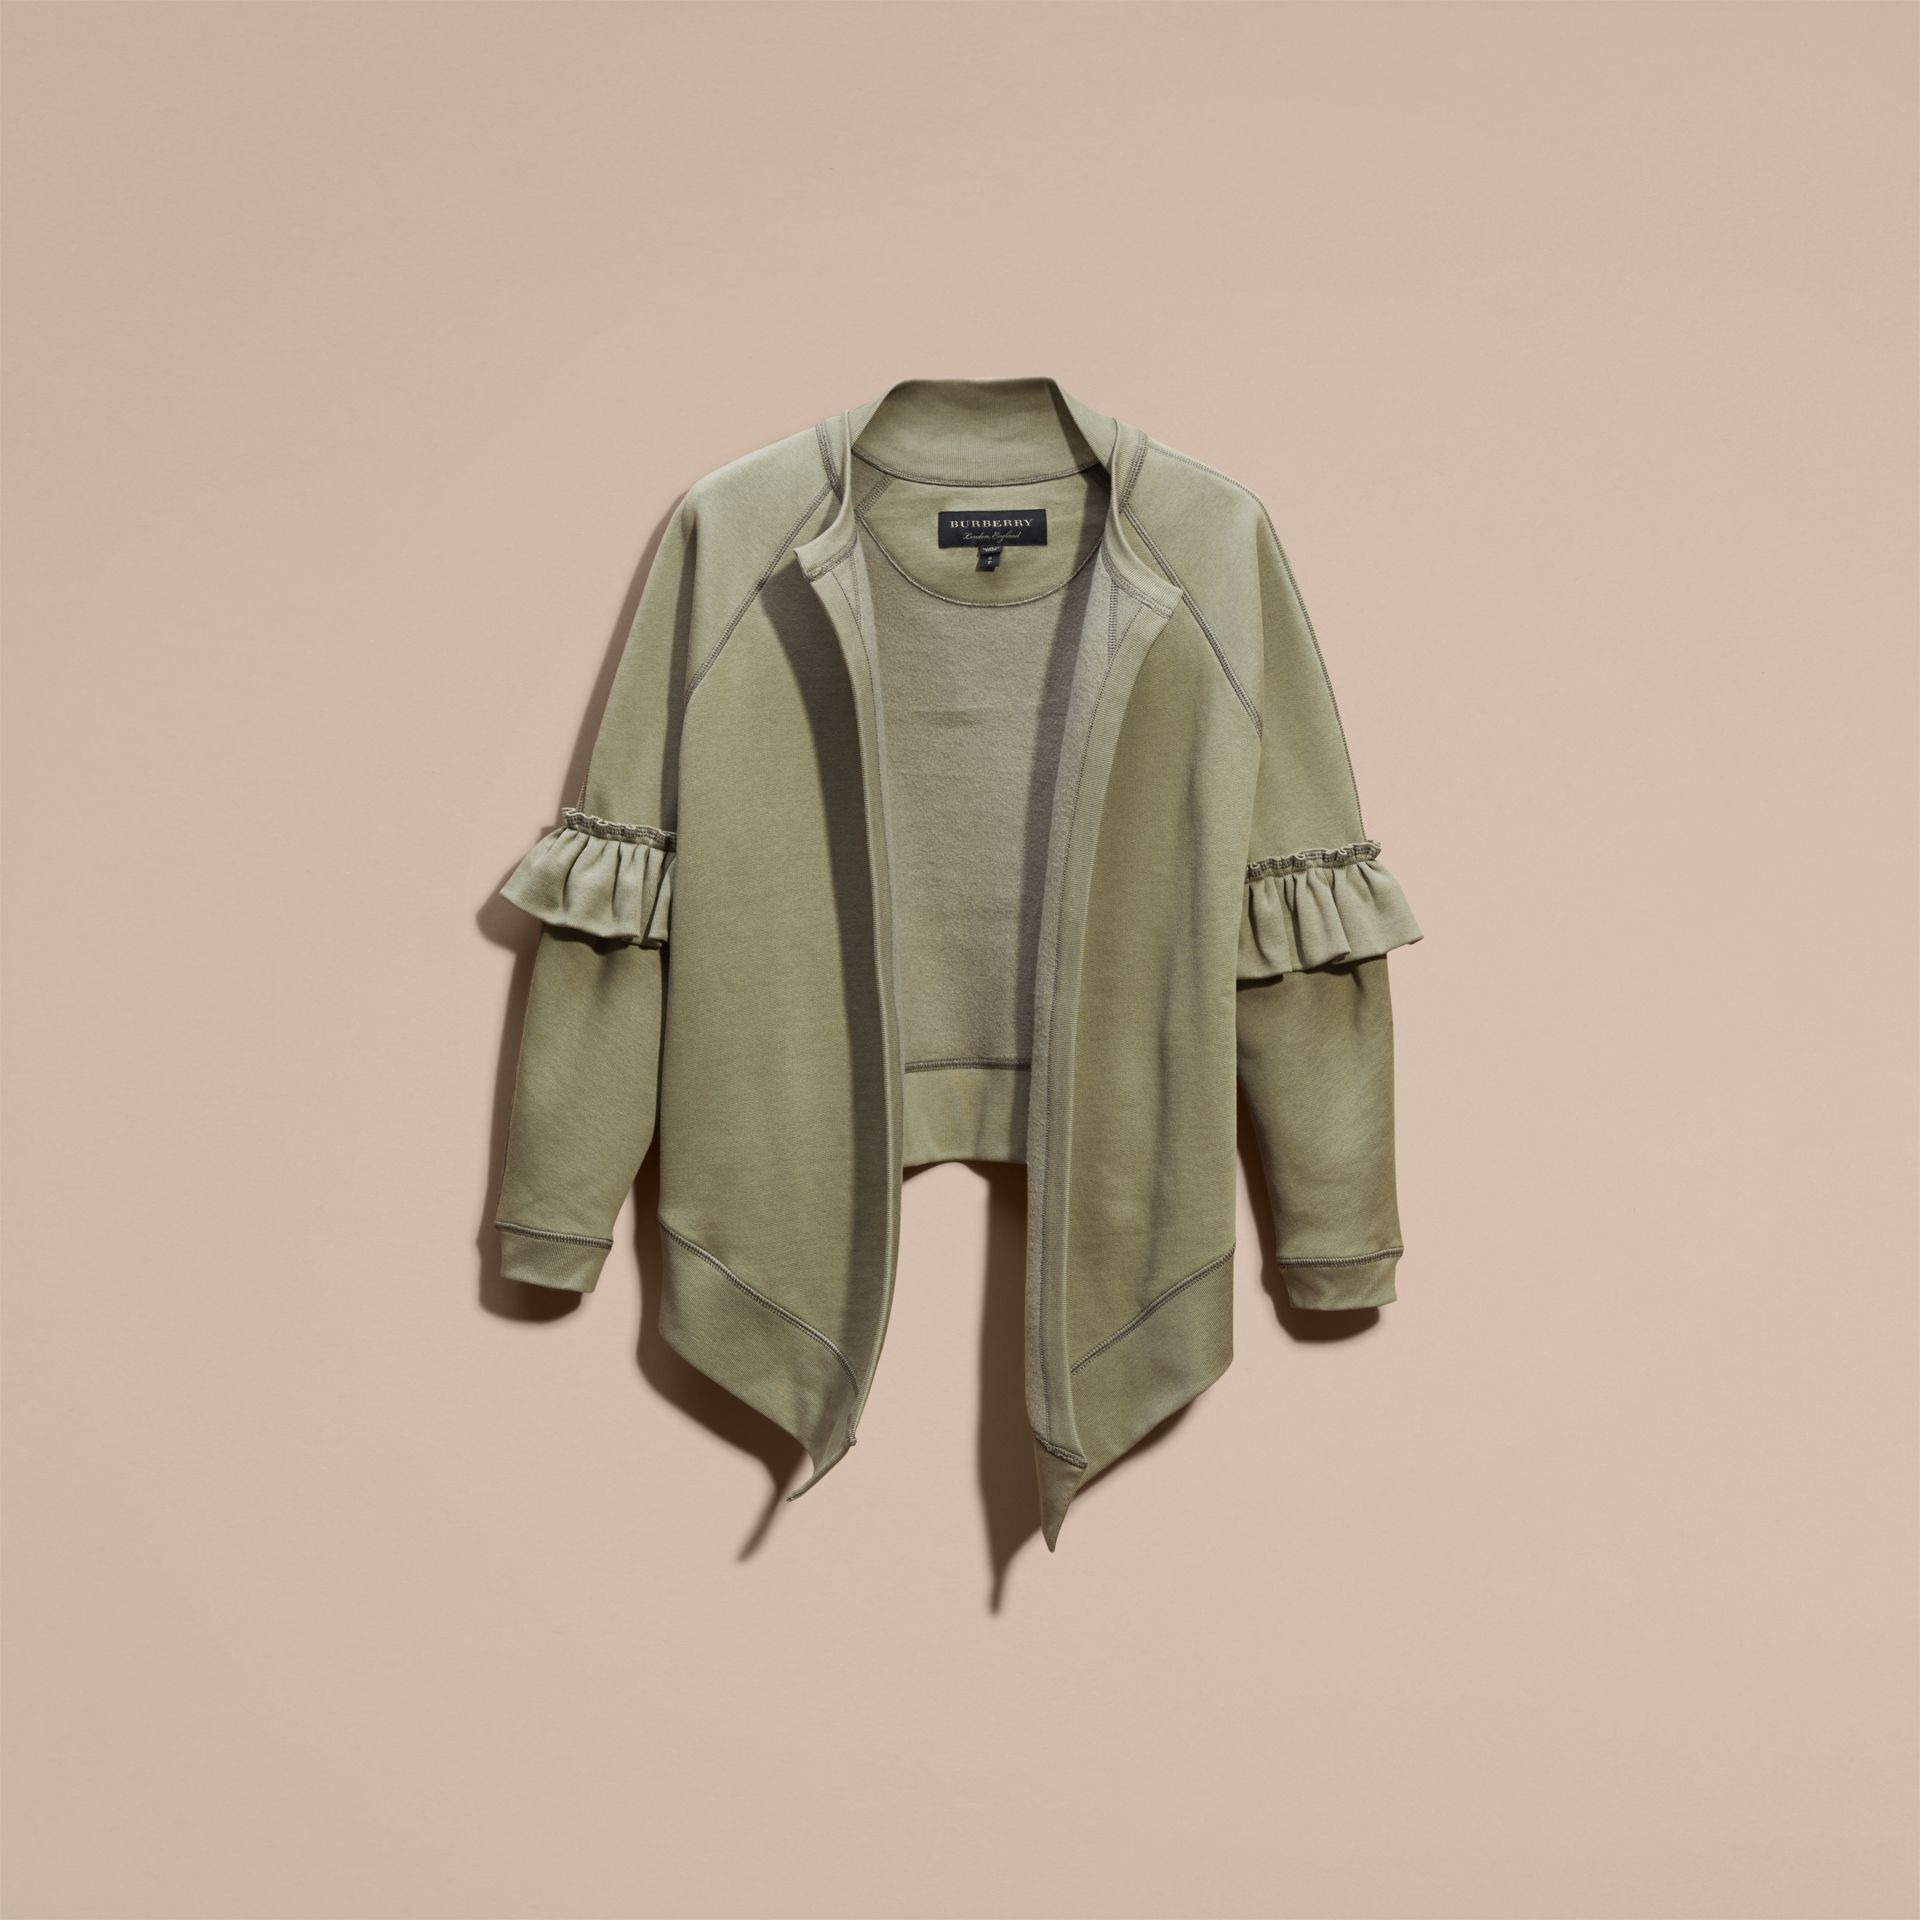 Khaki Cotton Blend Sweatshirt Jacket with Ruffle Sleeves Khaki - gallery image 4